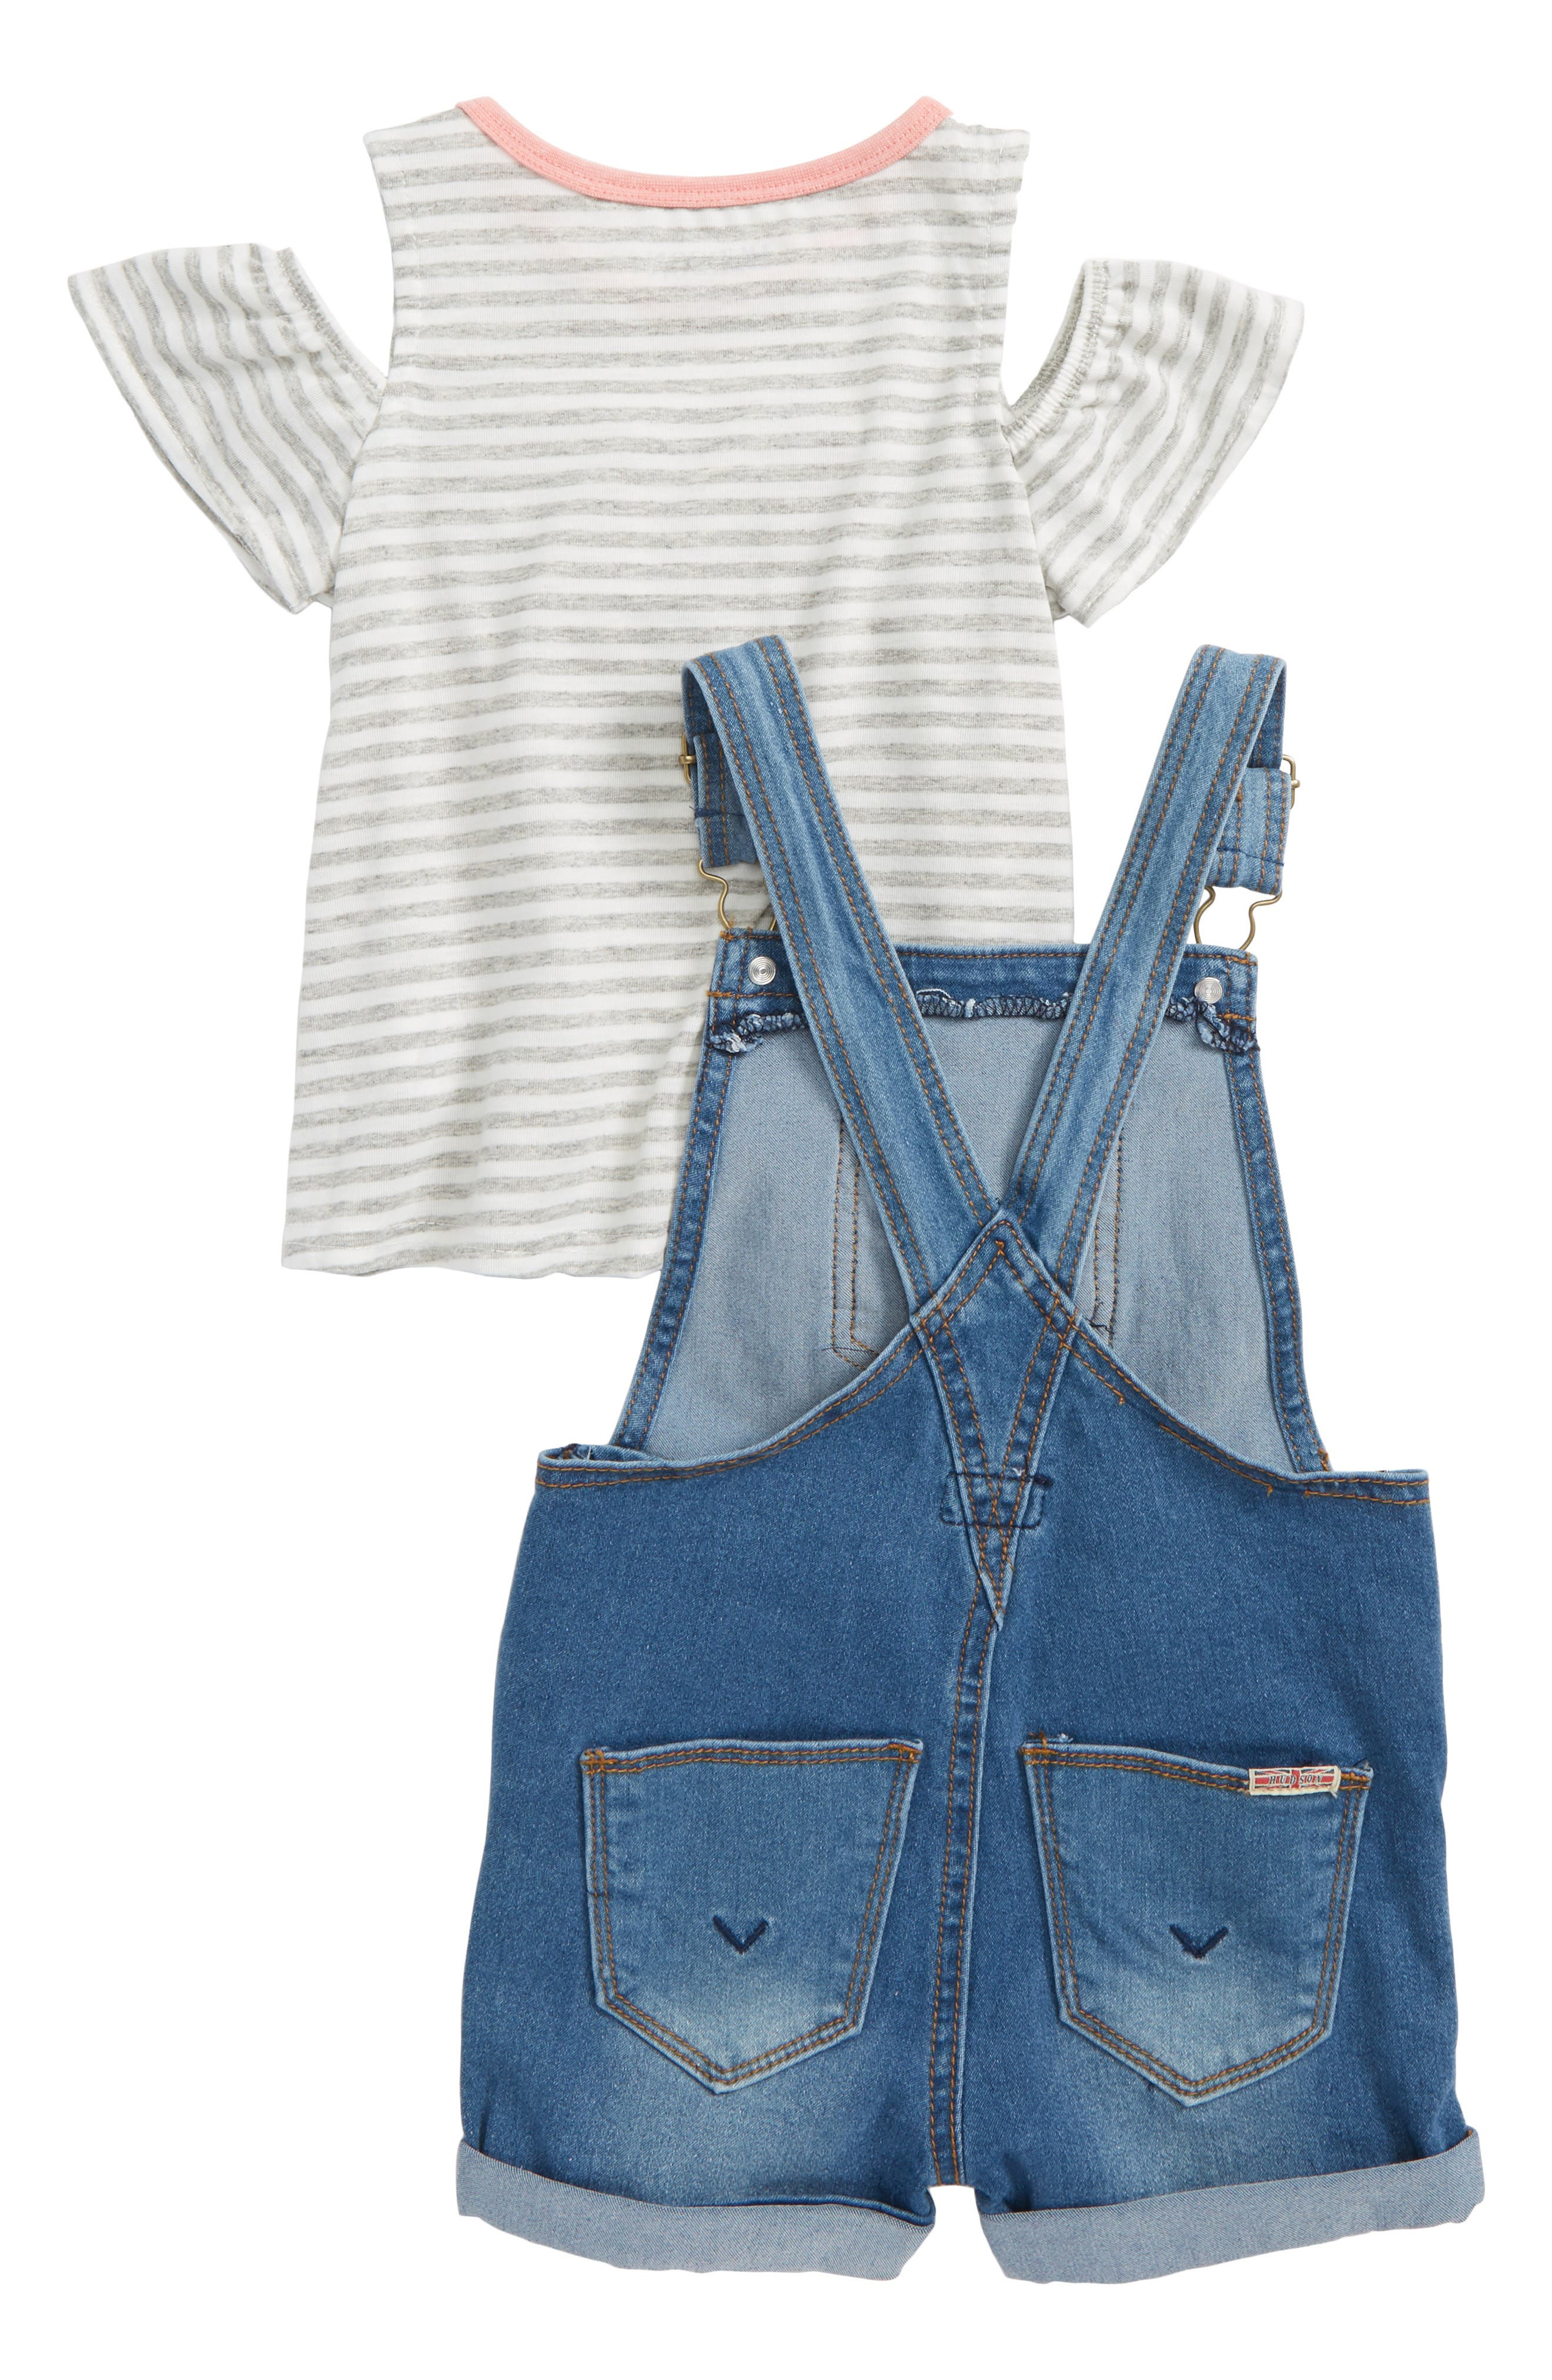 Overalls & Tee Set,                             Alternate thumbnail 2, color,                             499